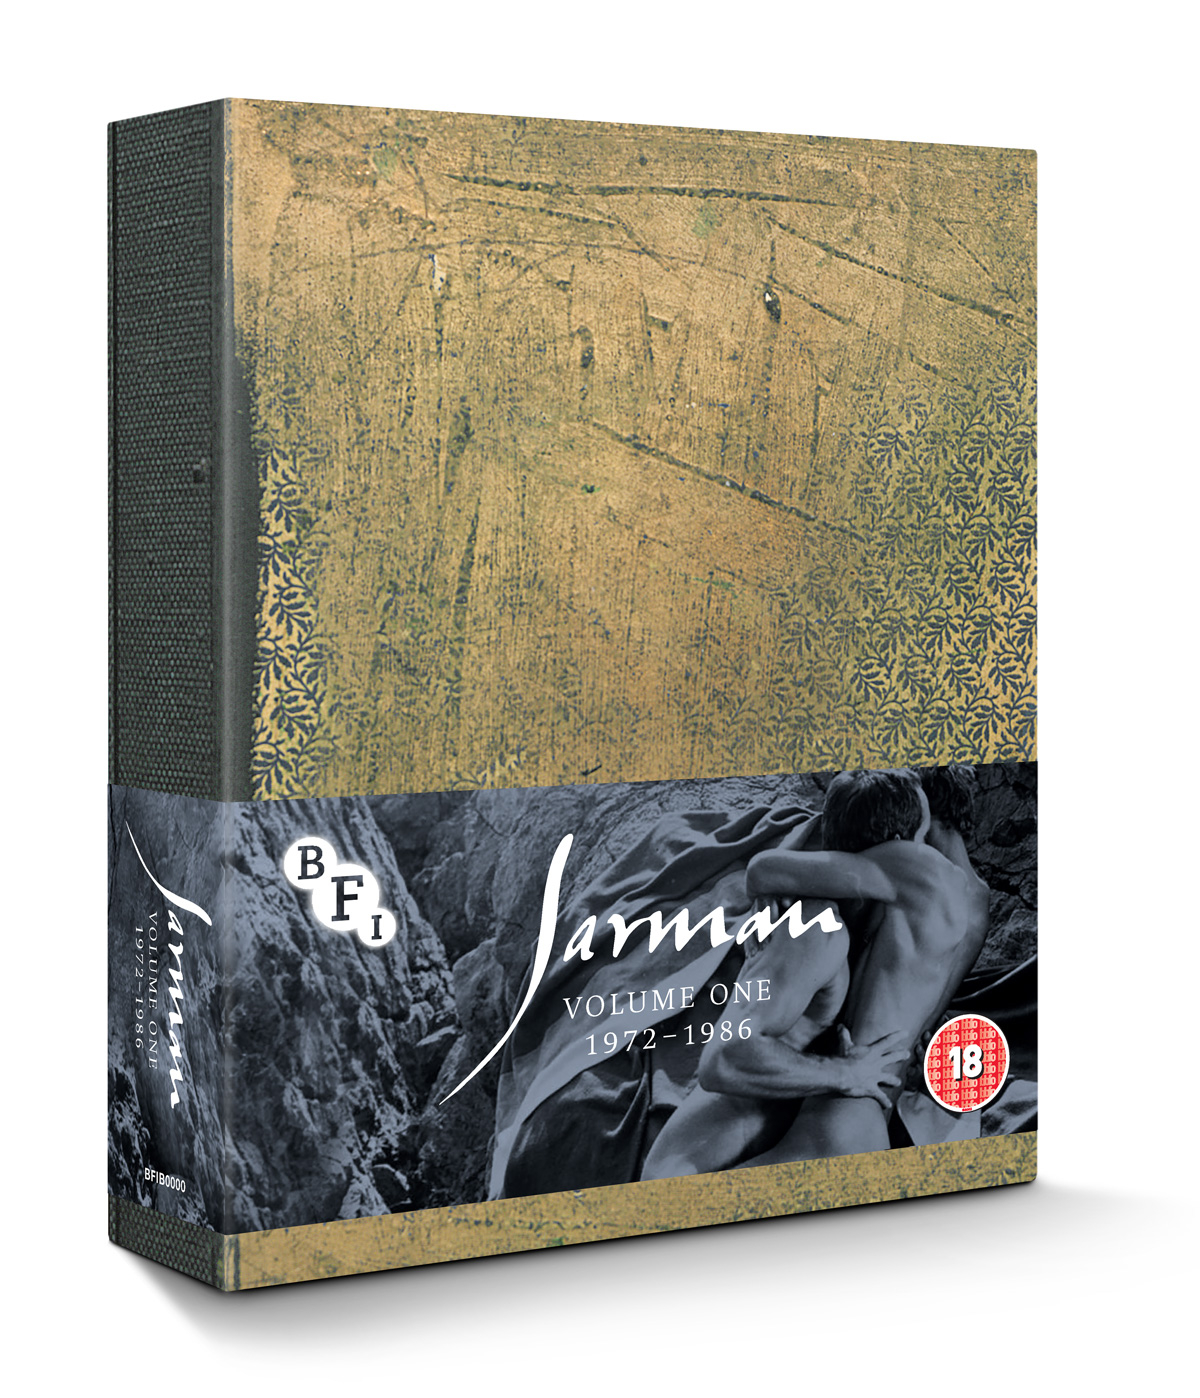 Buy Jarman Volume 1: 1972-1986 (Limited Edition Blu-ray Box Set)